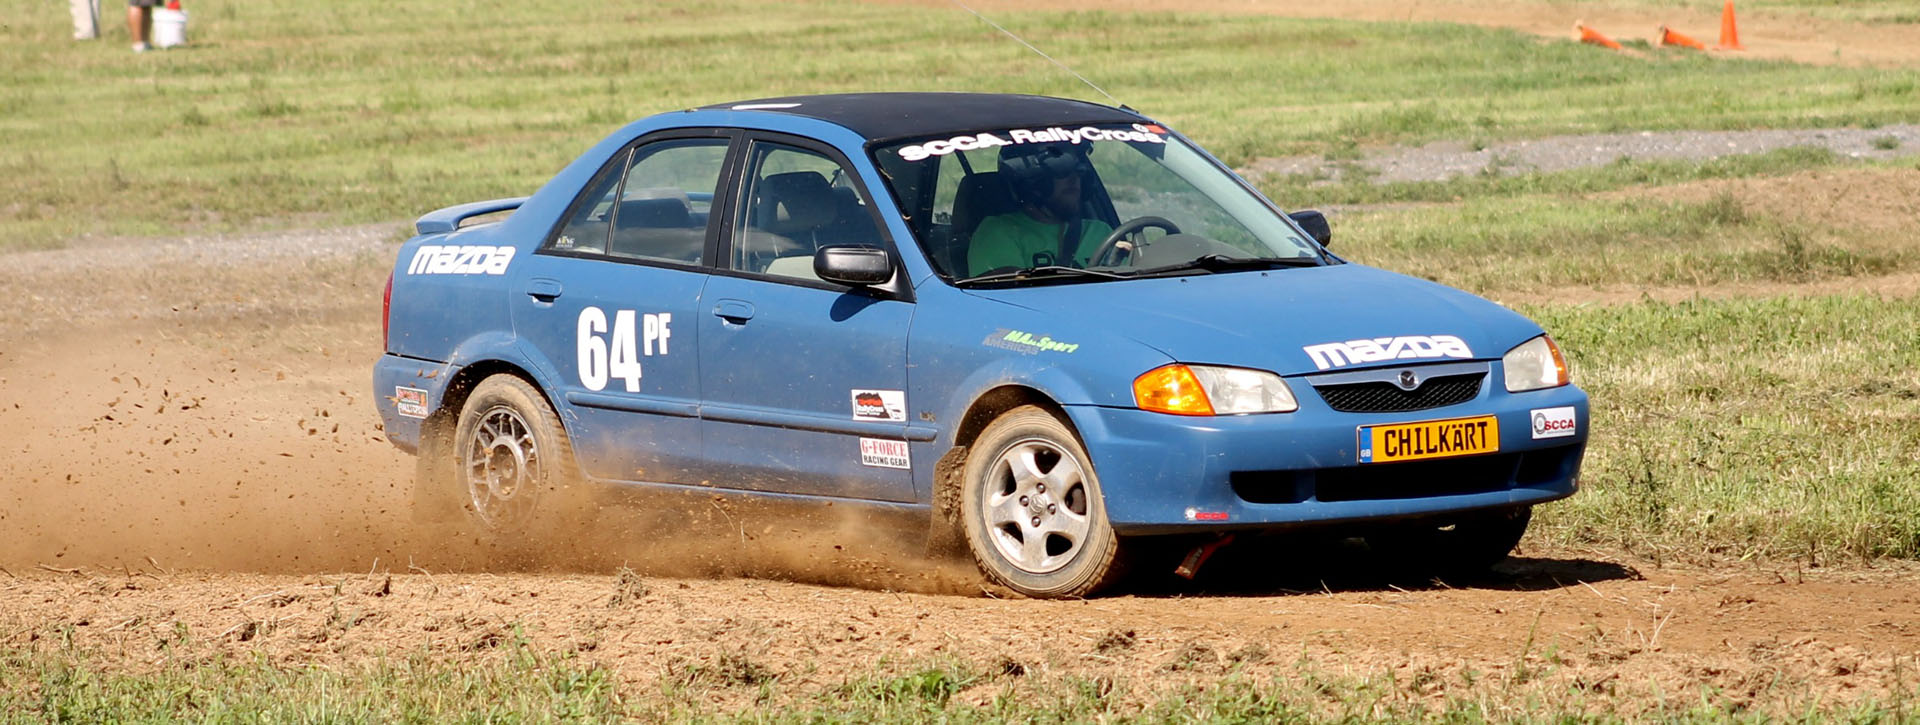 <p>Name: Mike Chilcote From: Gettysburg, PA Runs: RallyCross Drives: 2000 Mazda Protege in PF (Prepared Front Wheel Drive) MemberSince: 2016 &nbsp; When not working you would normally find Mike spending quality time with his wife or actively engaged in his favorite hobbies, mountain biking and homebrewing. Whilst all those things [&hellip;]</p>